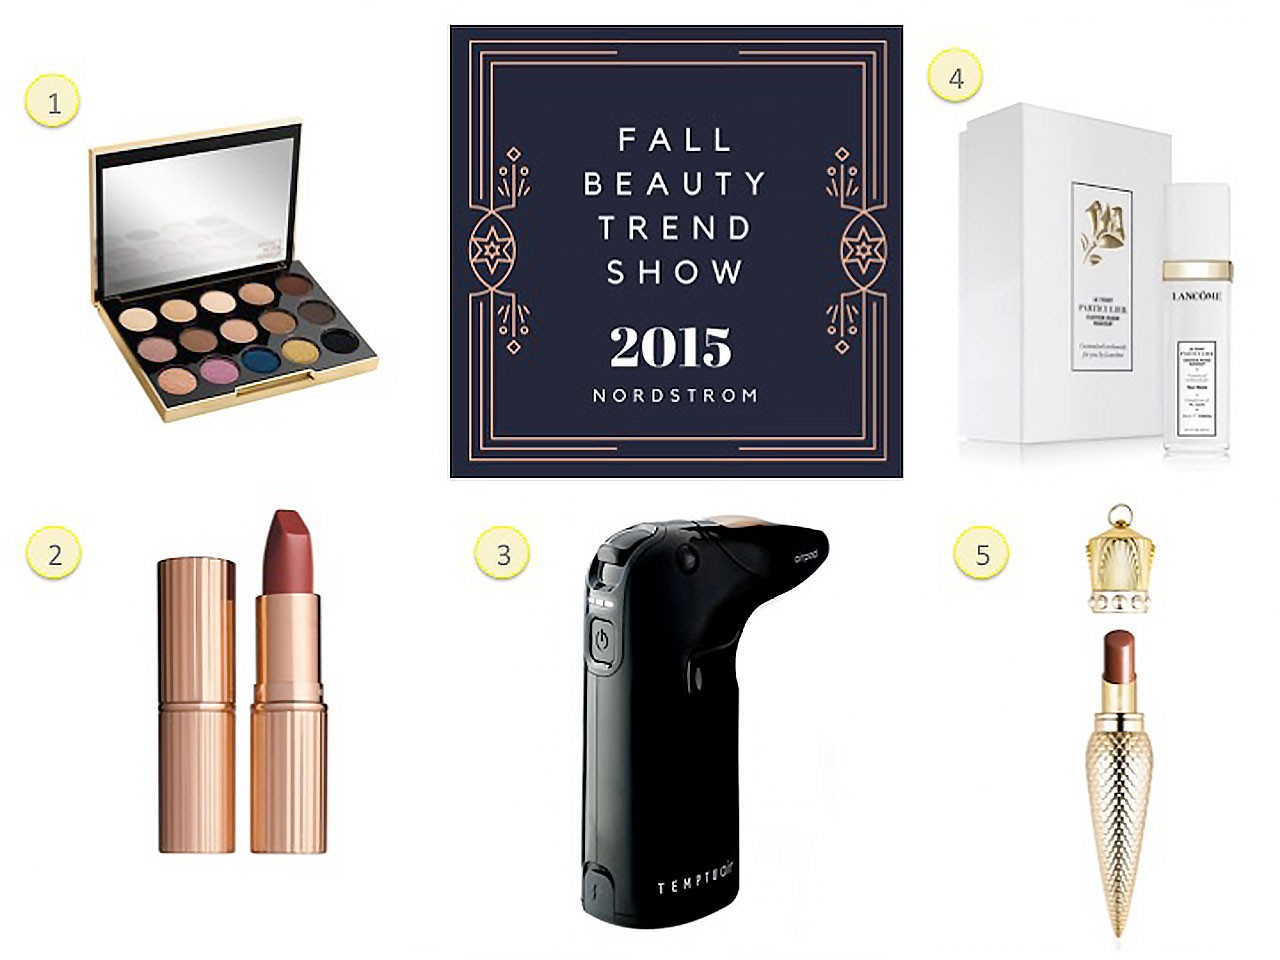 Top 5 Products from the Nordstrom Fall Beauty Trend Show